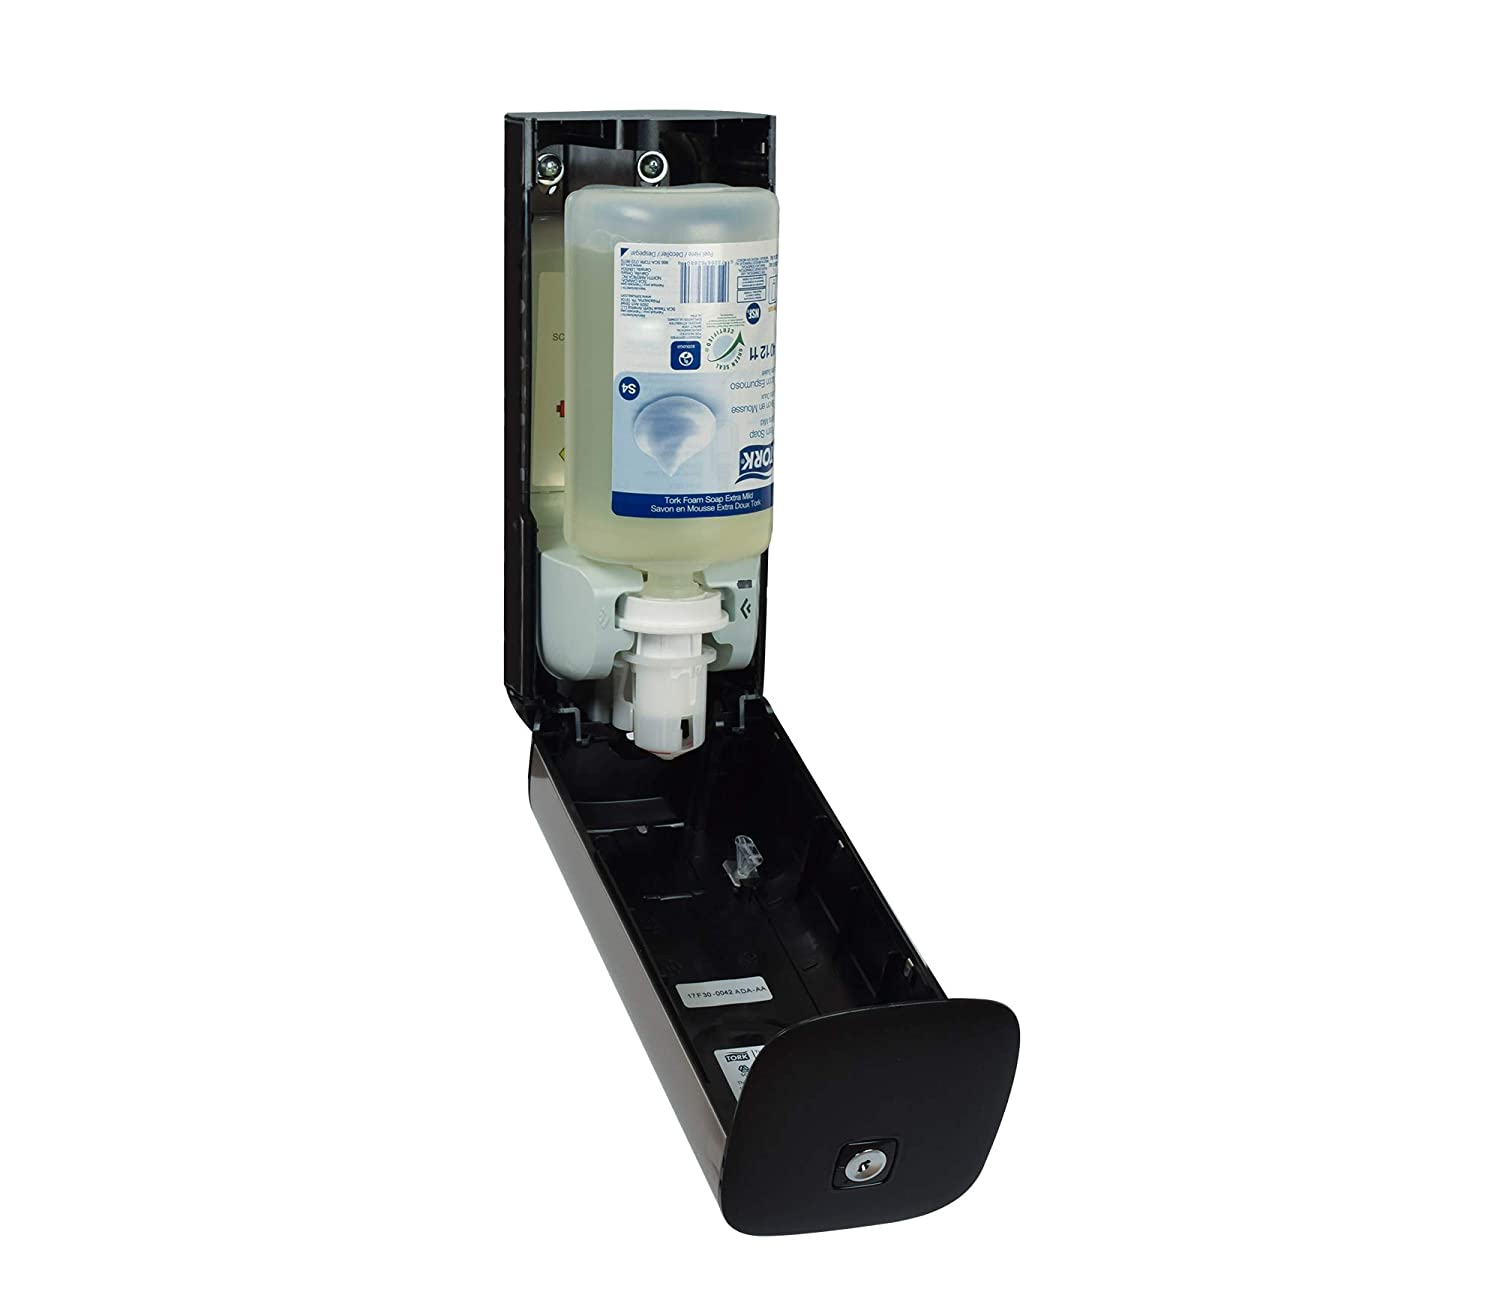 Tork 466100 Image Design Foam Skincare Automatic Dispenser with Intuition Sensor, 10.625 Height x 4.5